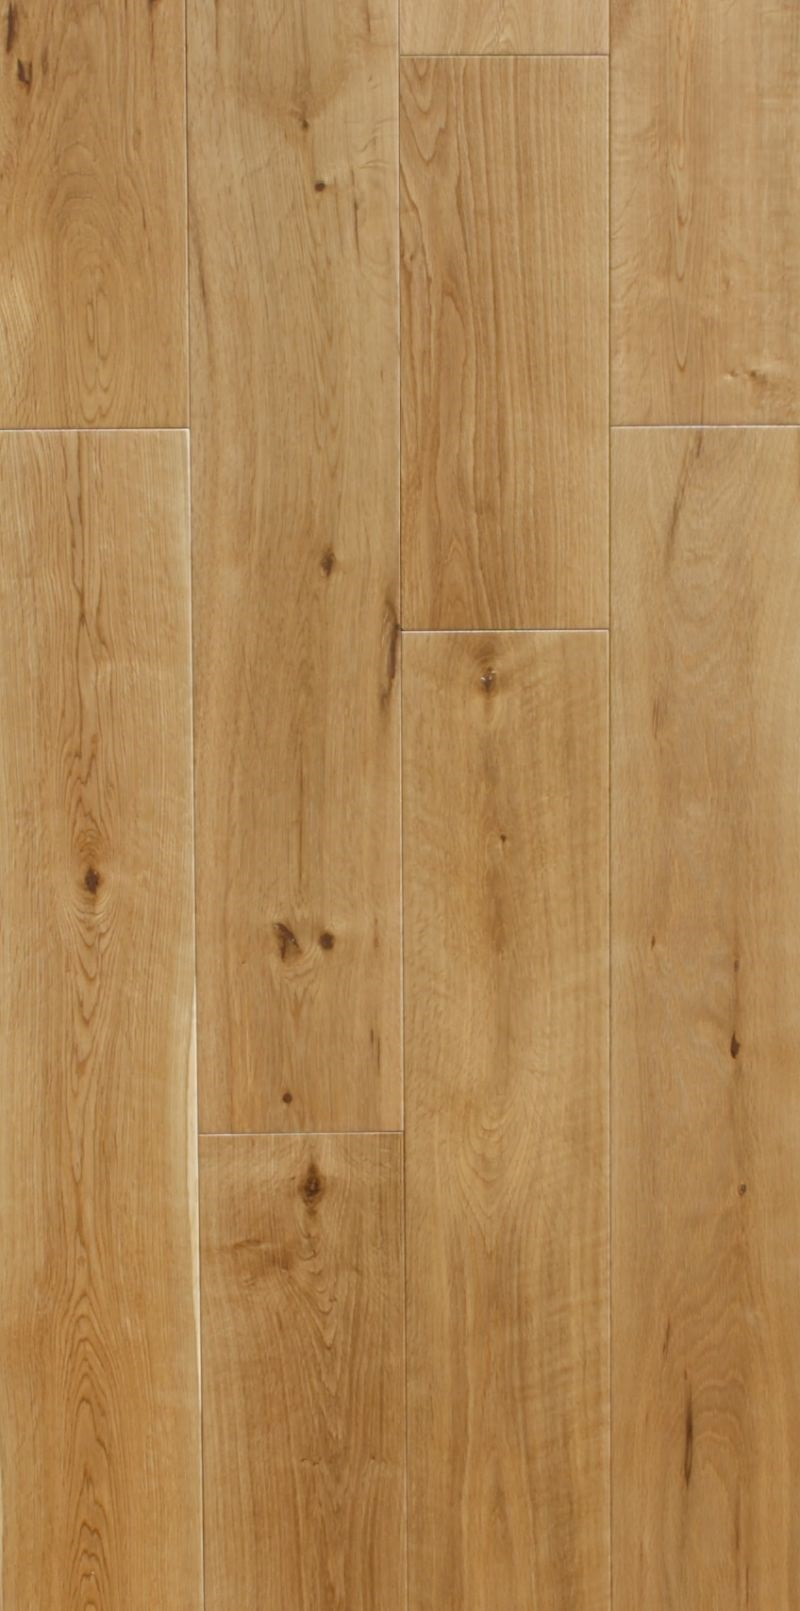 Builders choice oiled engineered wood flooring london for Engineered woods